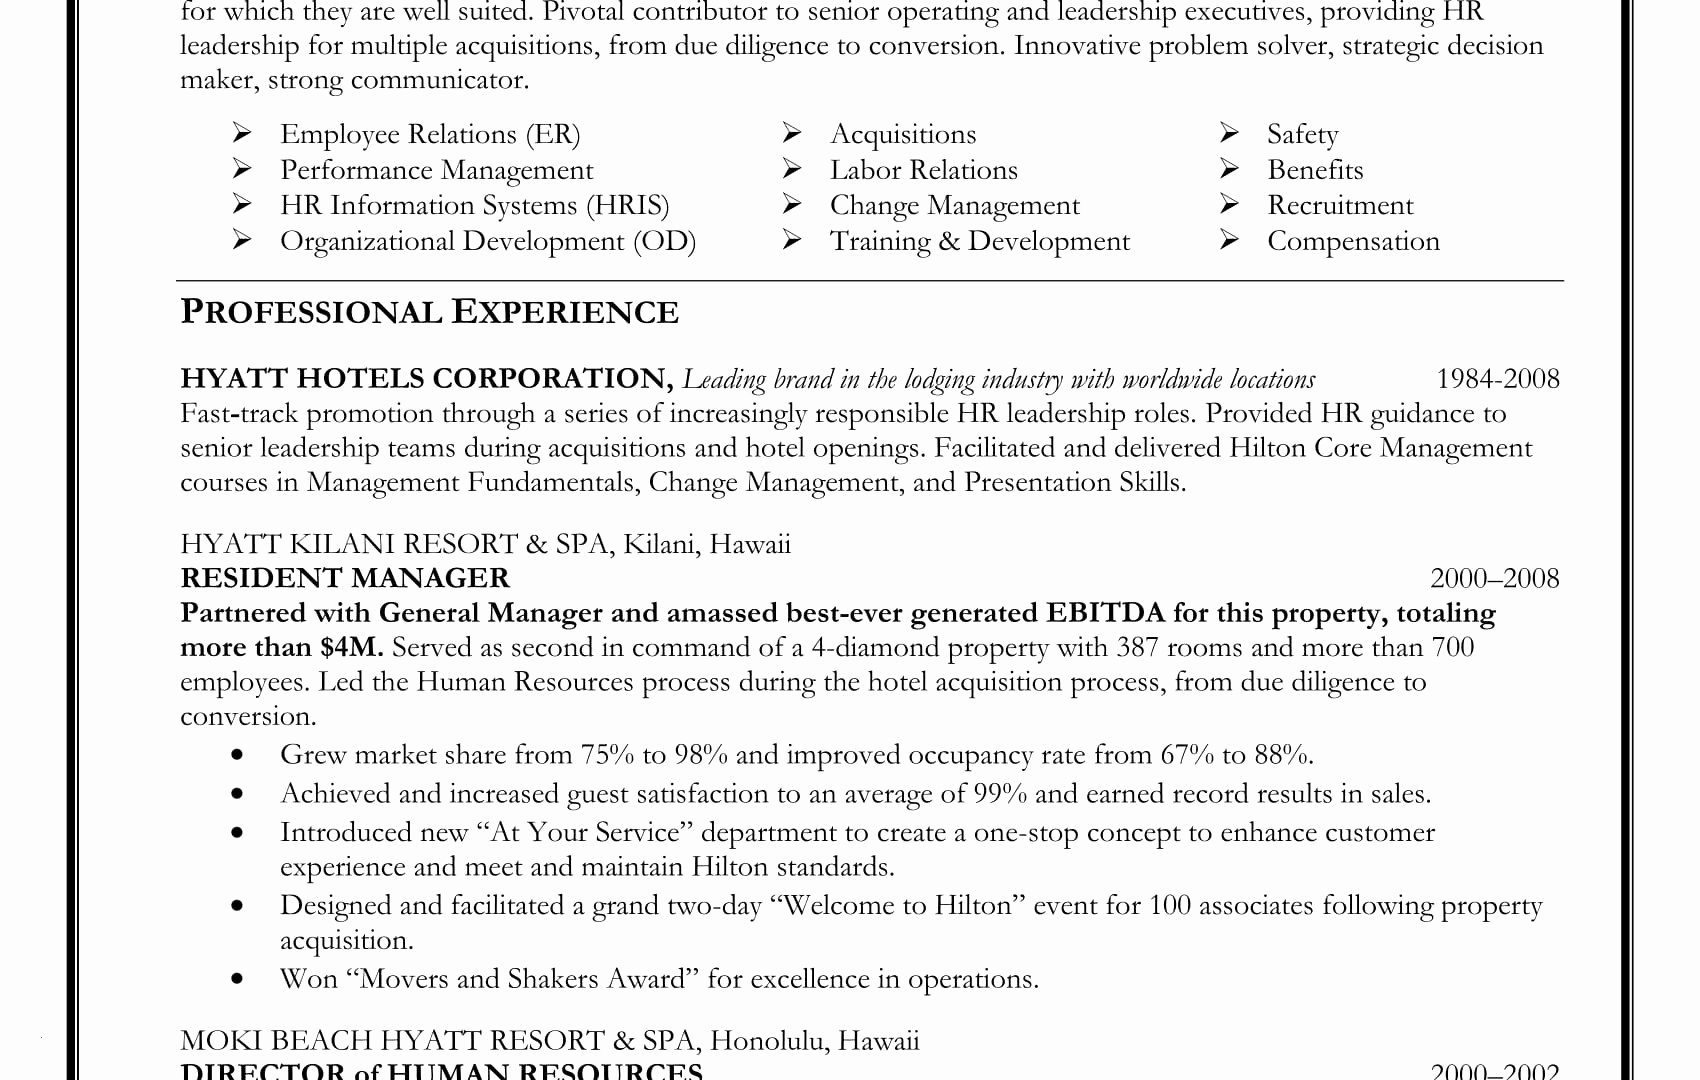 Information Technology Resume Template Word - Information Technology Resume Templates Microsoft Word Information